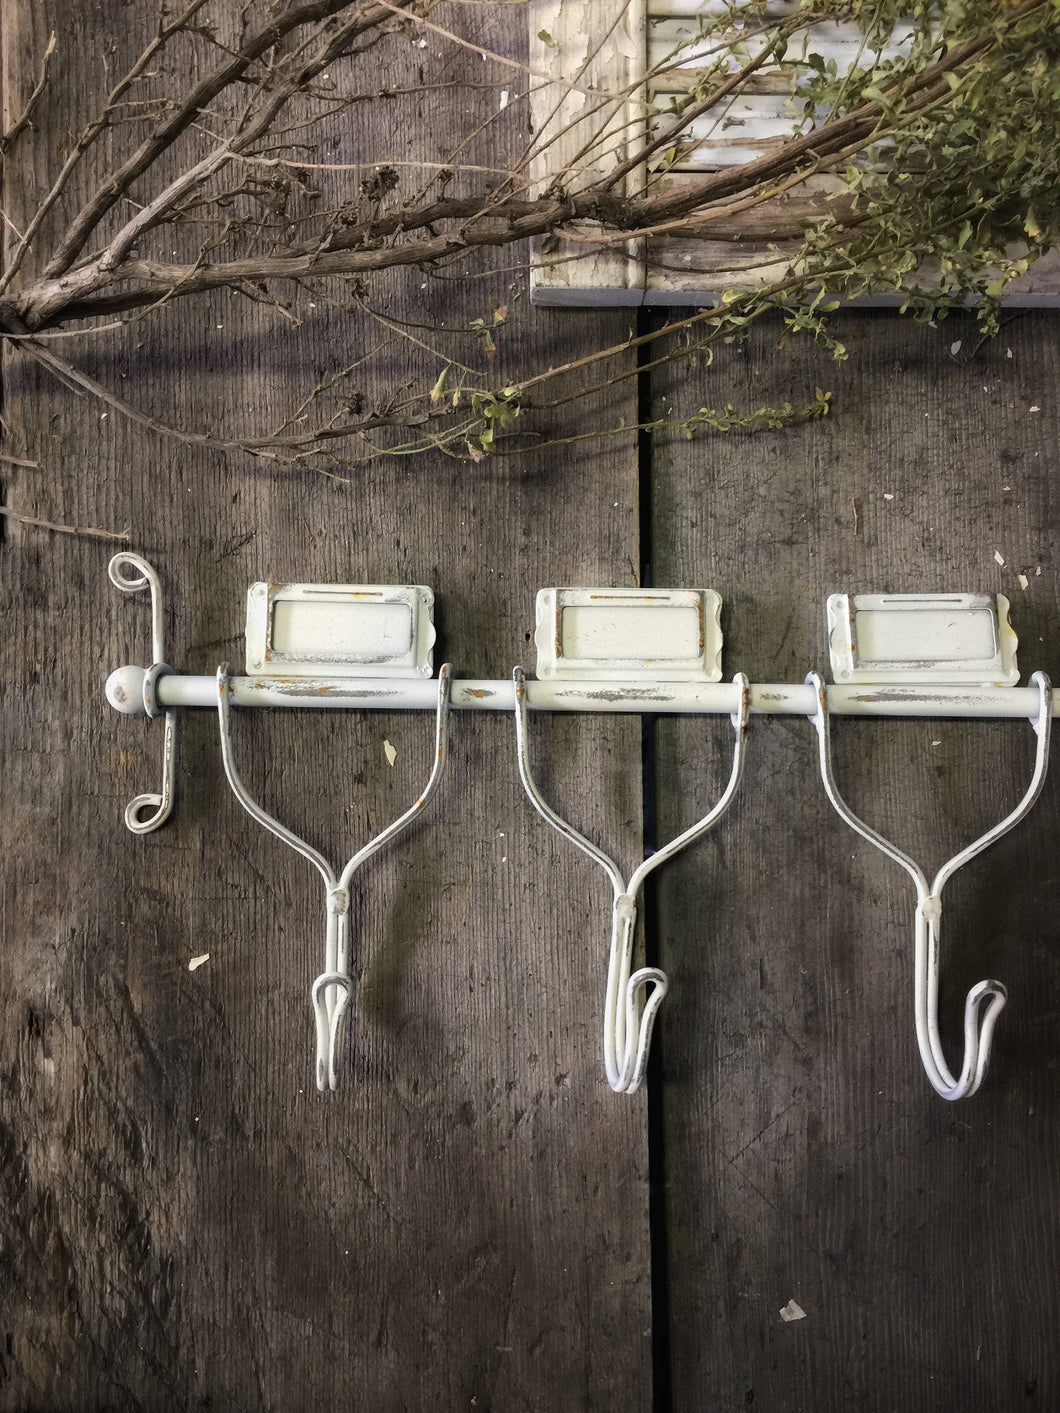 Rustic Barnhouse Wall Hook - 3 Hook